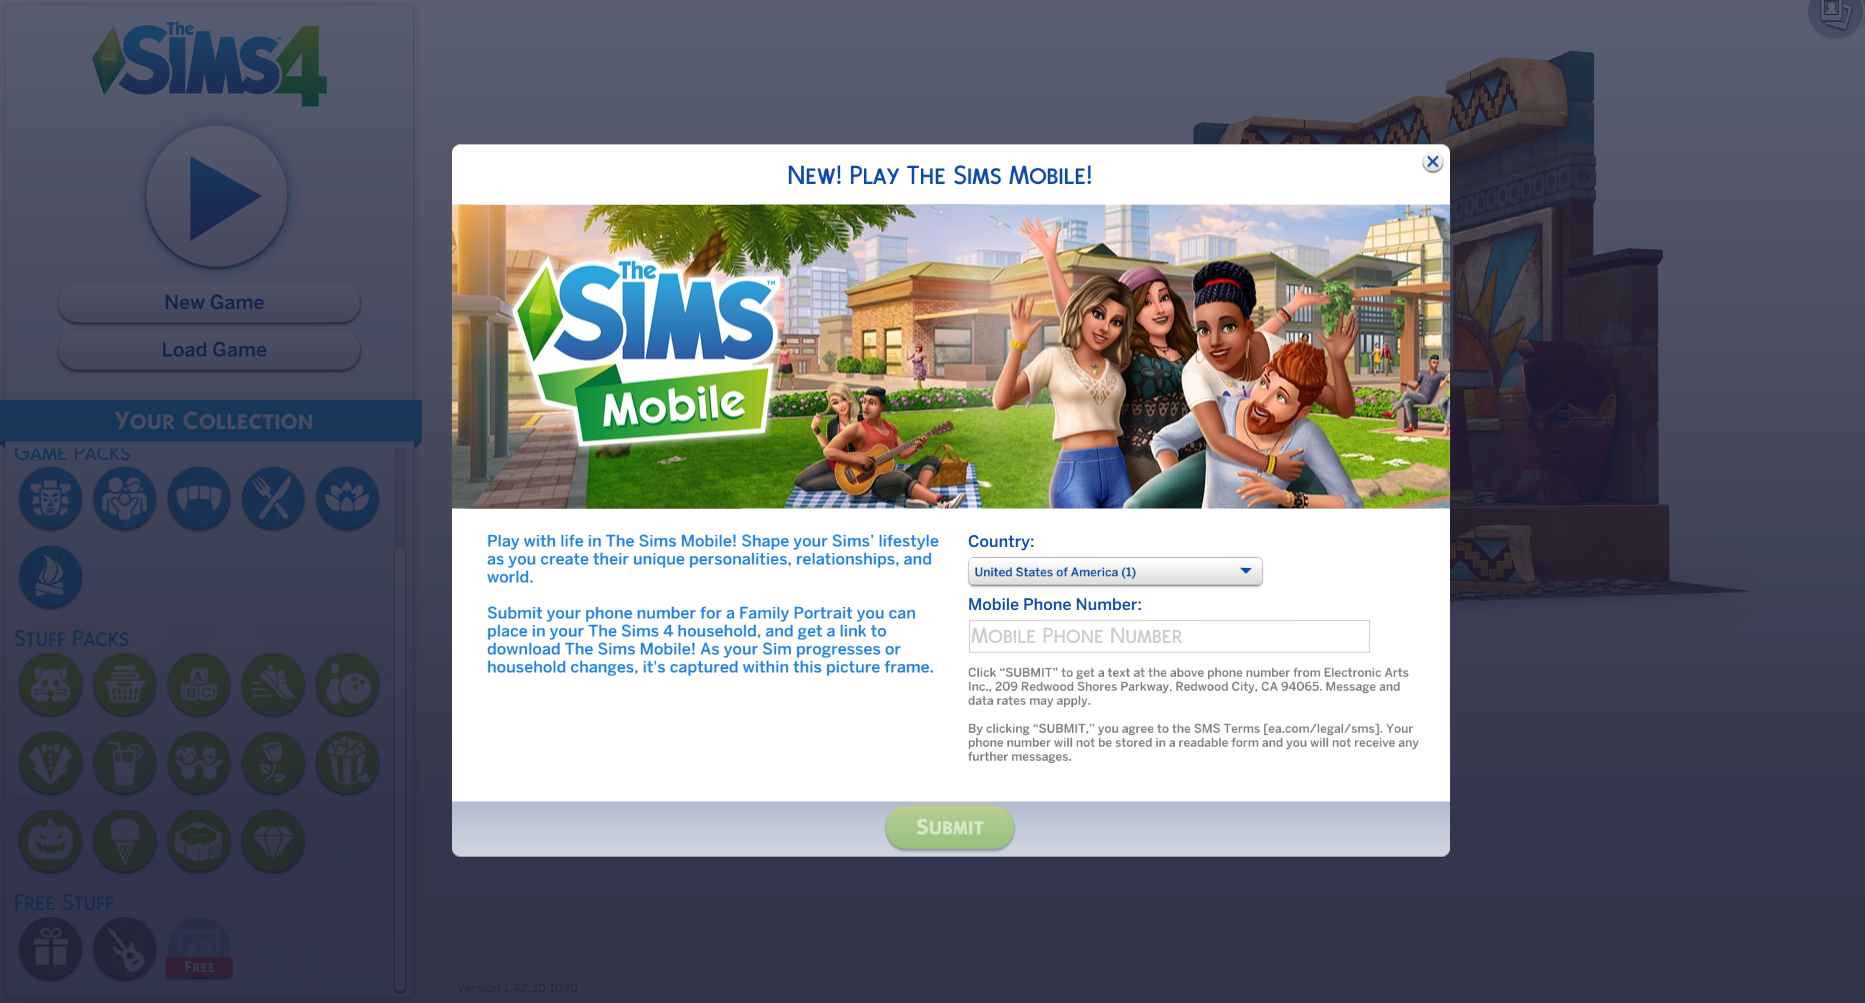 The Sims 4: Download The Sims Mobile & Redeem a Free